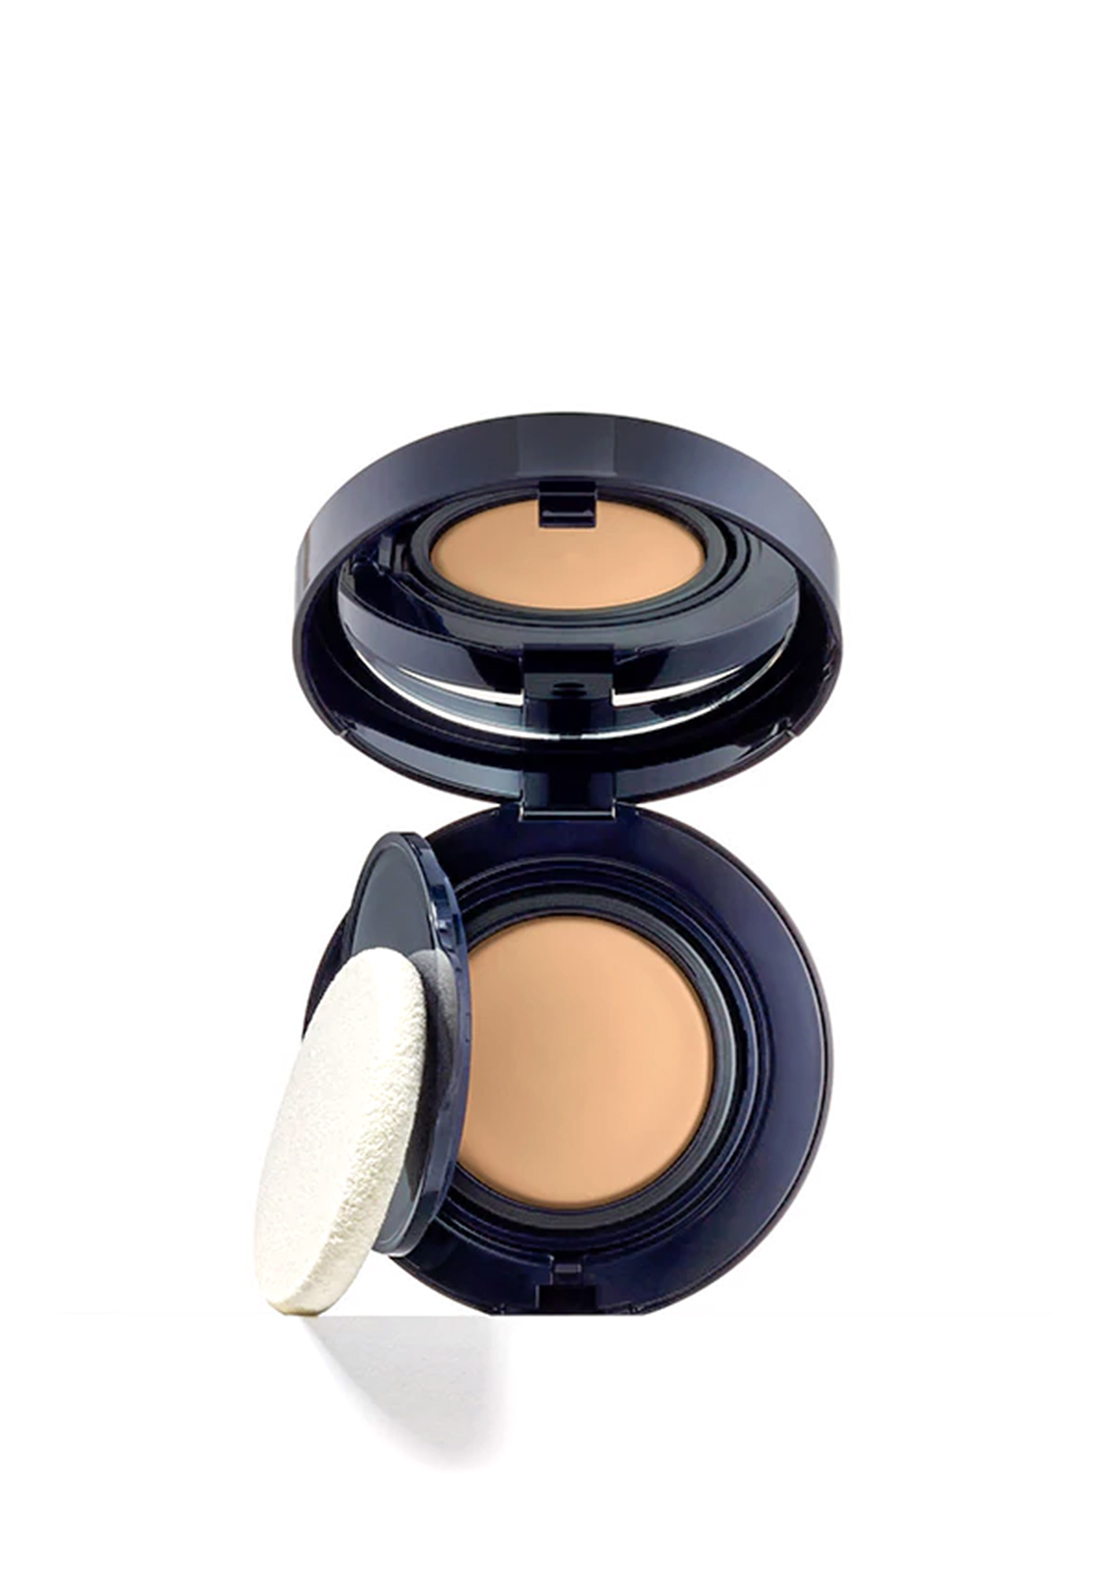 Estee Lauder Perfectionist Compact Makeup, Fresco